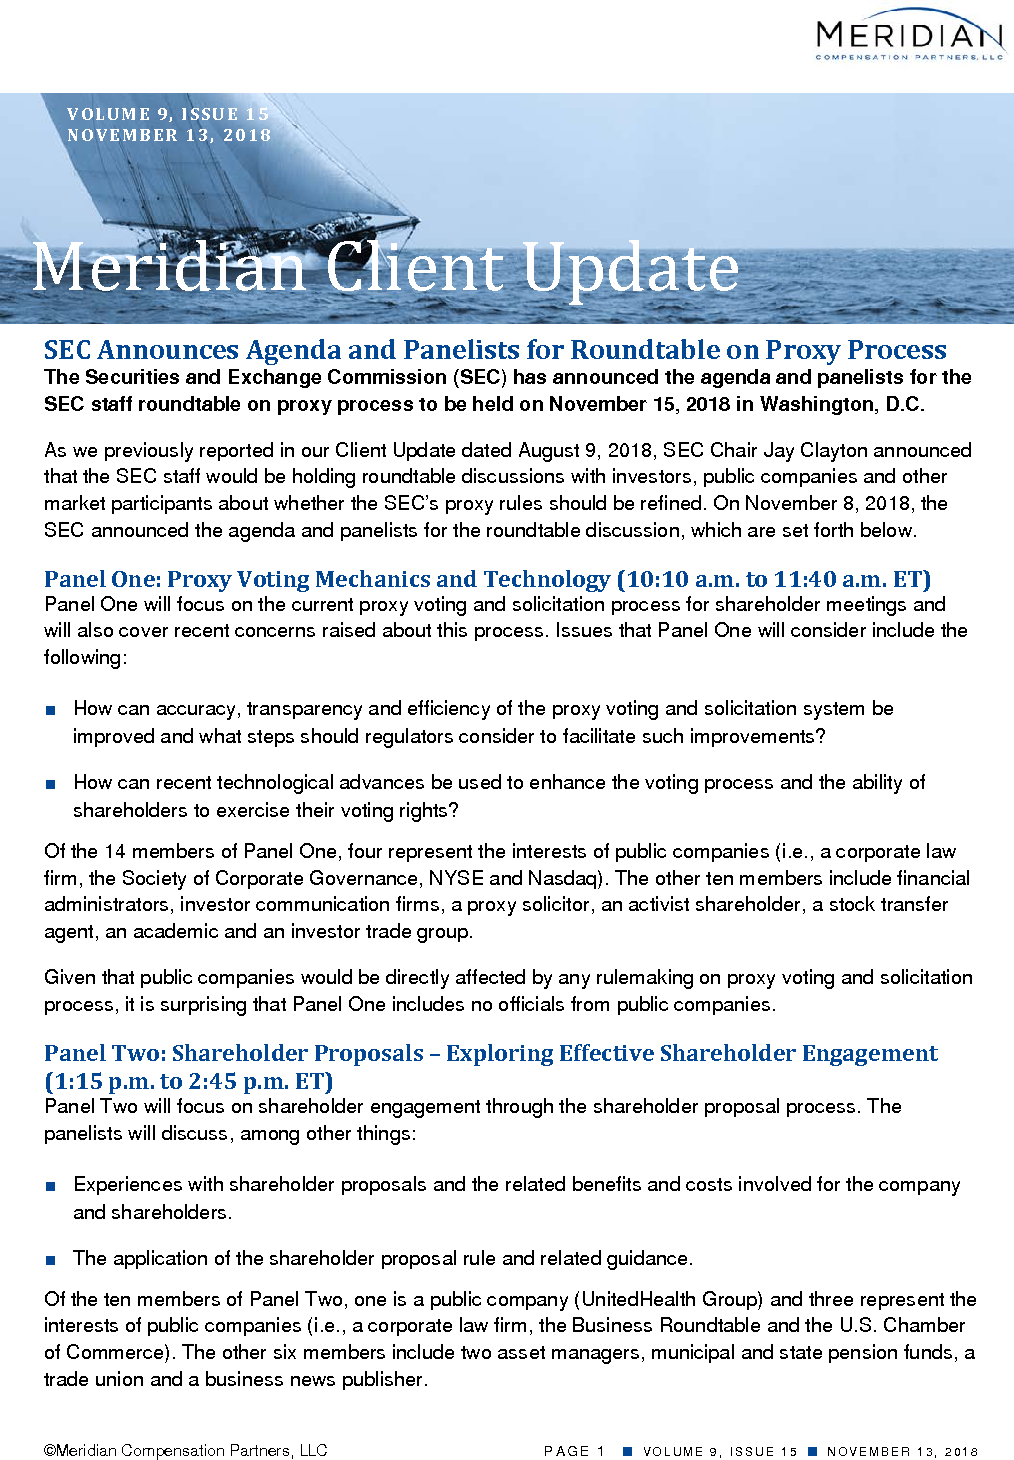 SEC Announces Agenda and Panelists for Roundtable on Proxy Process (PDF)